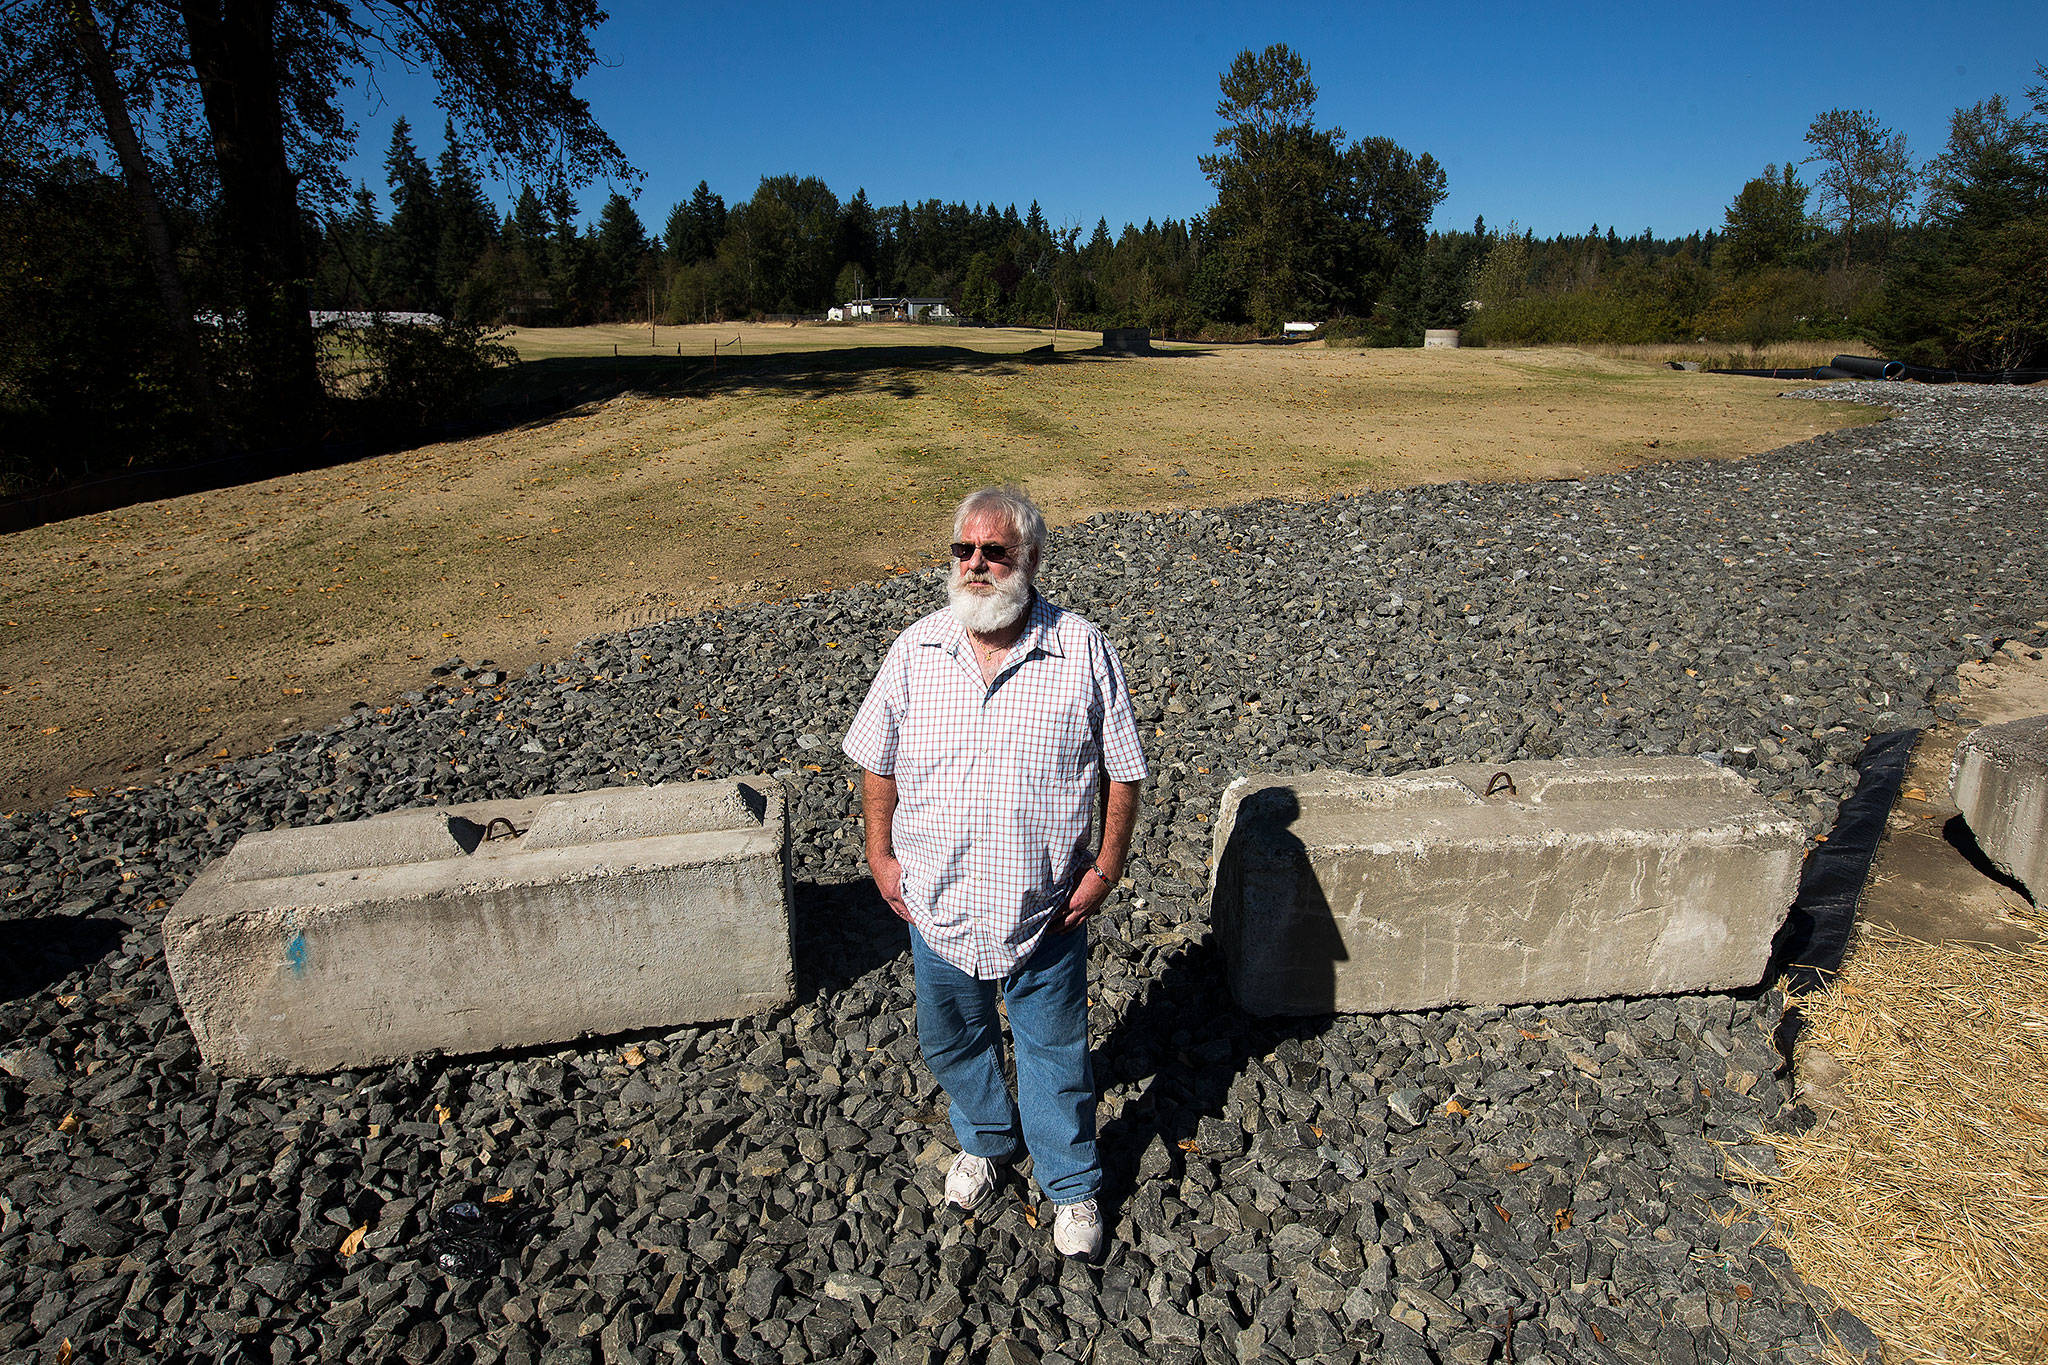 Jeff Salisbury stands in front of an 11-acre site that heavy equipment operators had cleared, without permits, along Broadway Avenue in Maltby, on Wednesday. Shipley and others blew the whistle in a case involving truck maker OSW Equipment & Repair that has turned into the most glaring code-enforcement case in recent memory in Snohomish County. (Andy Bronson / The Herald)